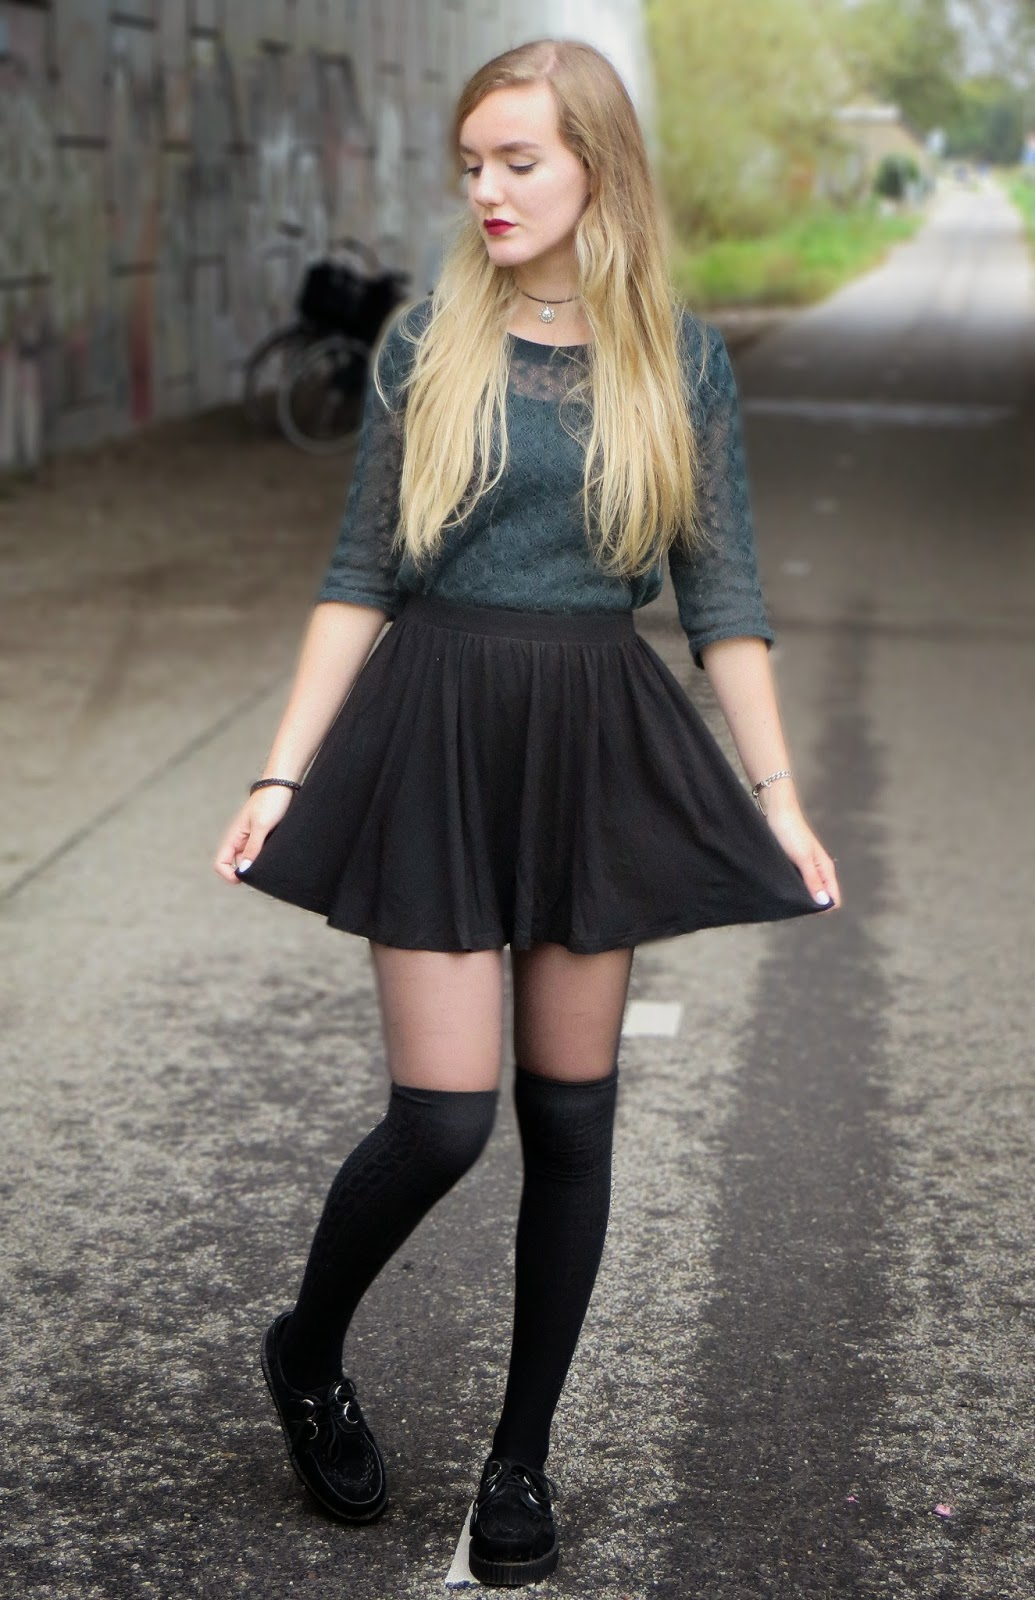 outfit with skater skirt and creepers